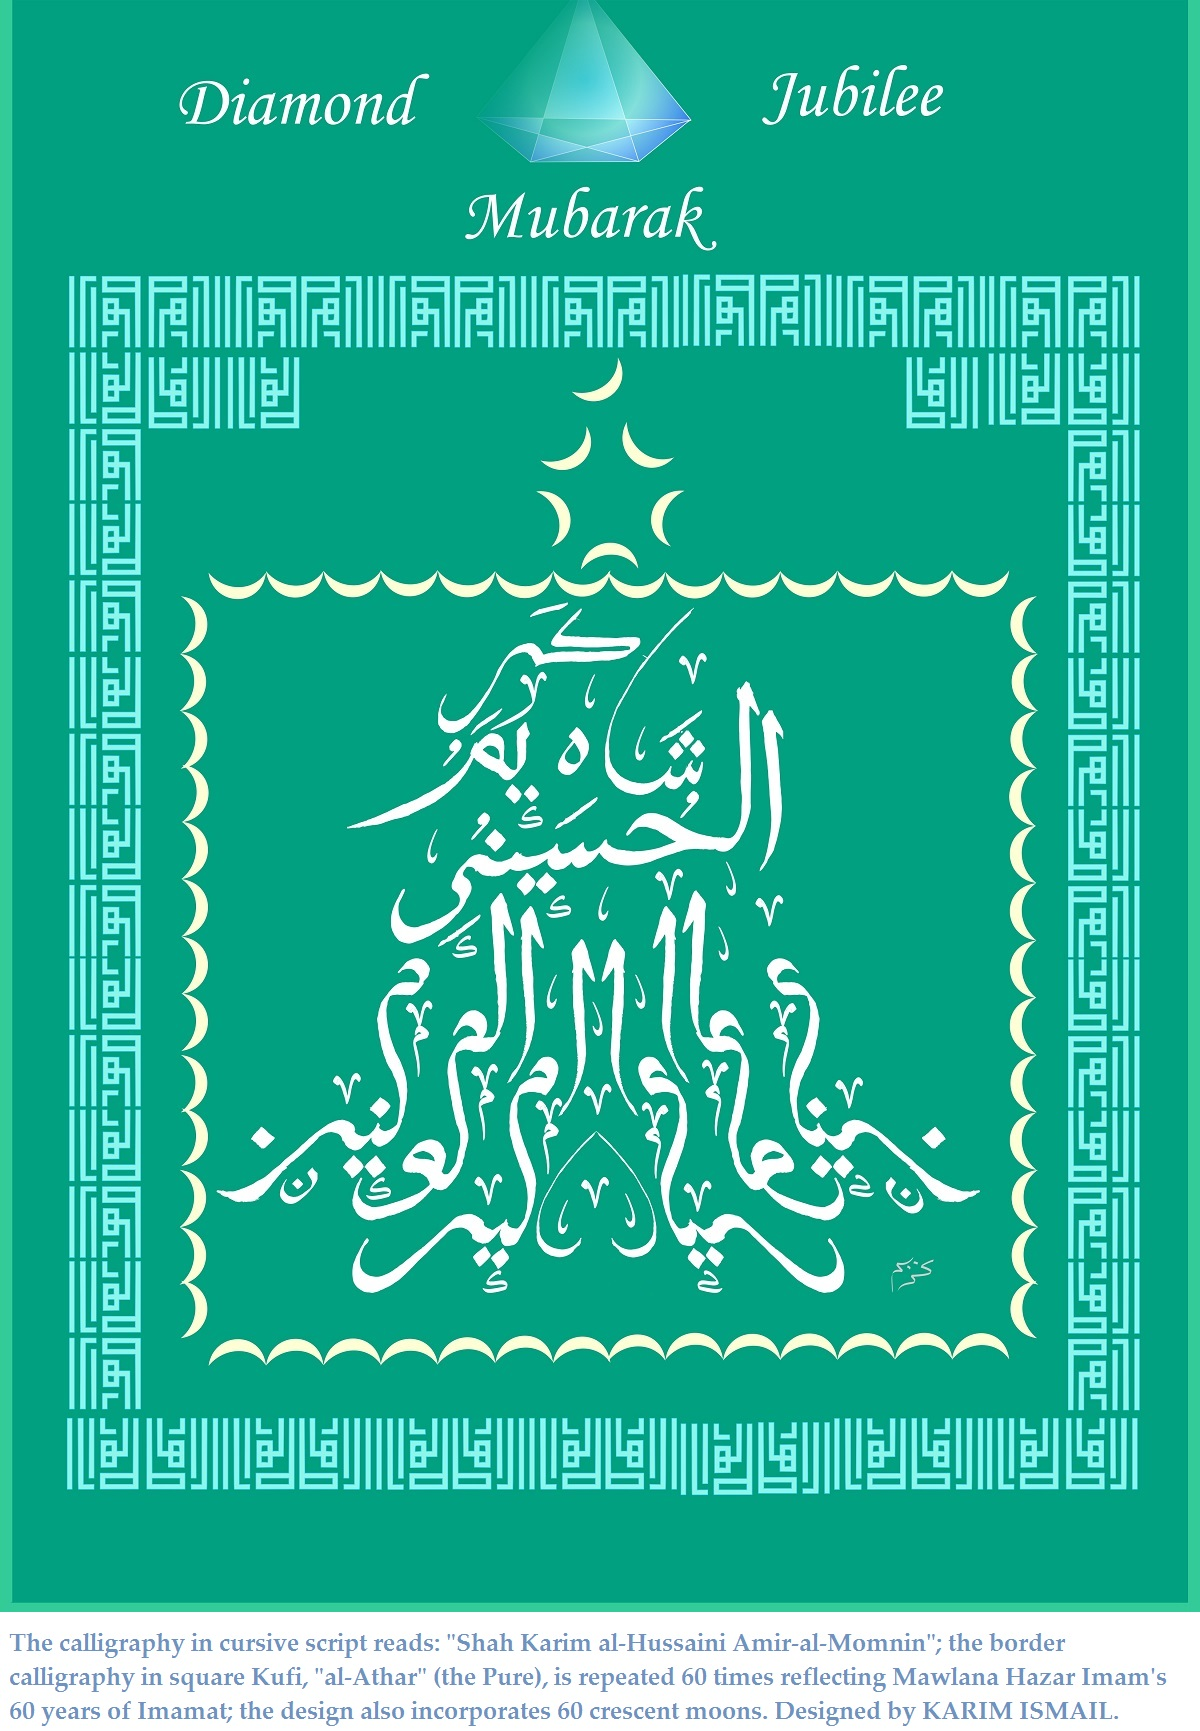 Expressions for the Diamond Jubilee of Mawlana Hazar Imam, His Highness the Aga Khan: Calligraphy; Ya Mawla you are there; Someone is coming; and Darbar 2018